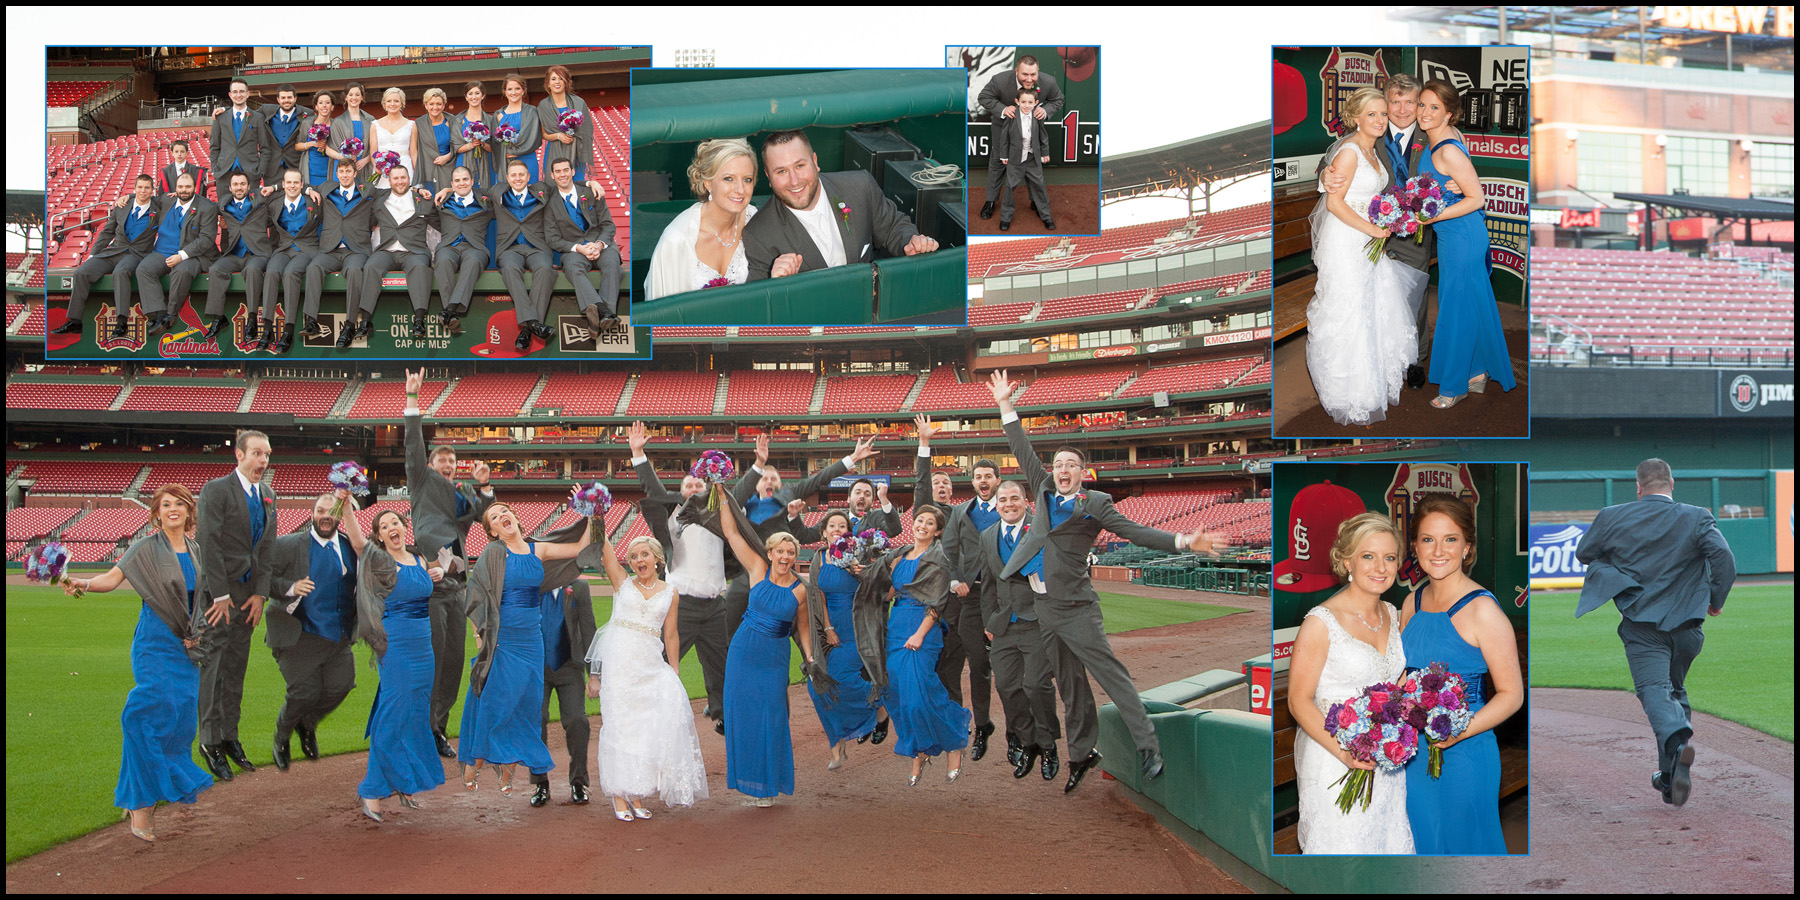 Katelyn & Levi's Wedding in Fall 2015 with pictures at Busch Stadium!